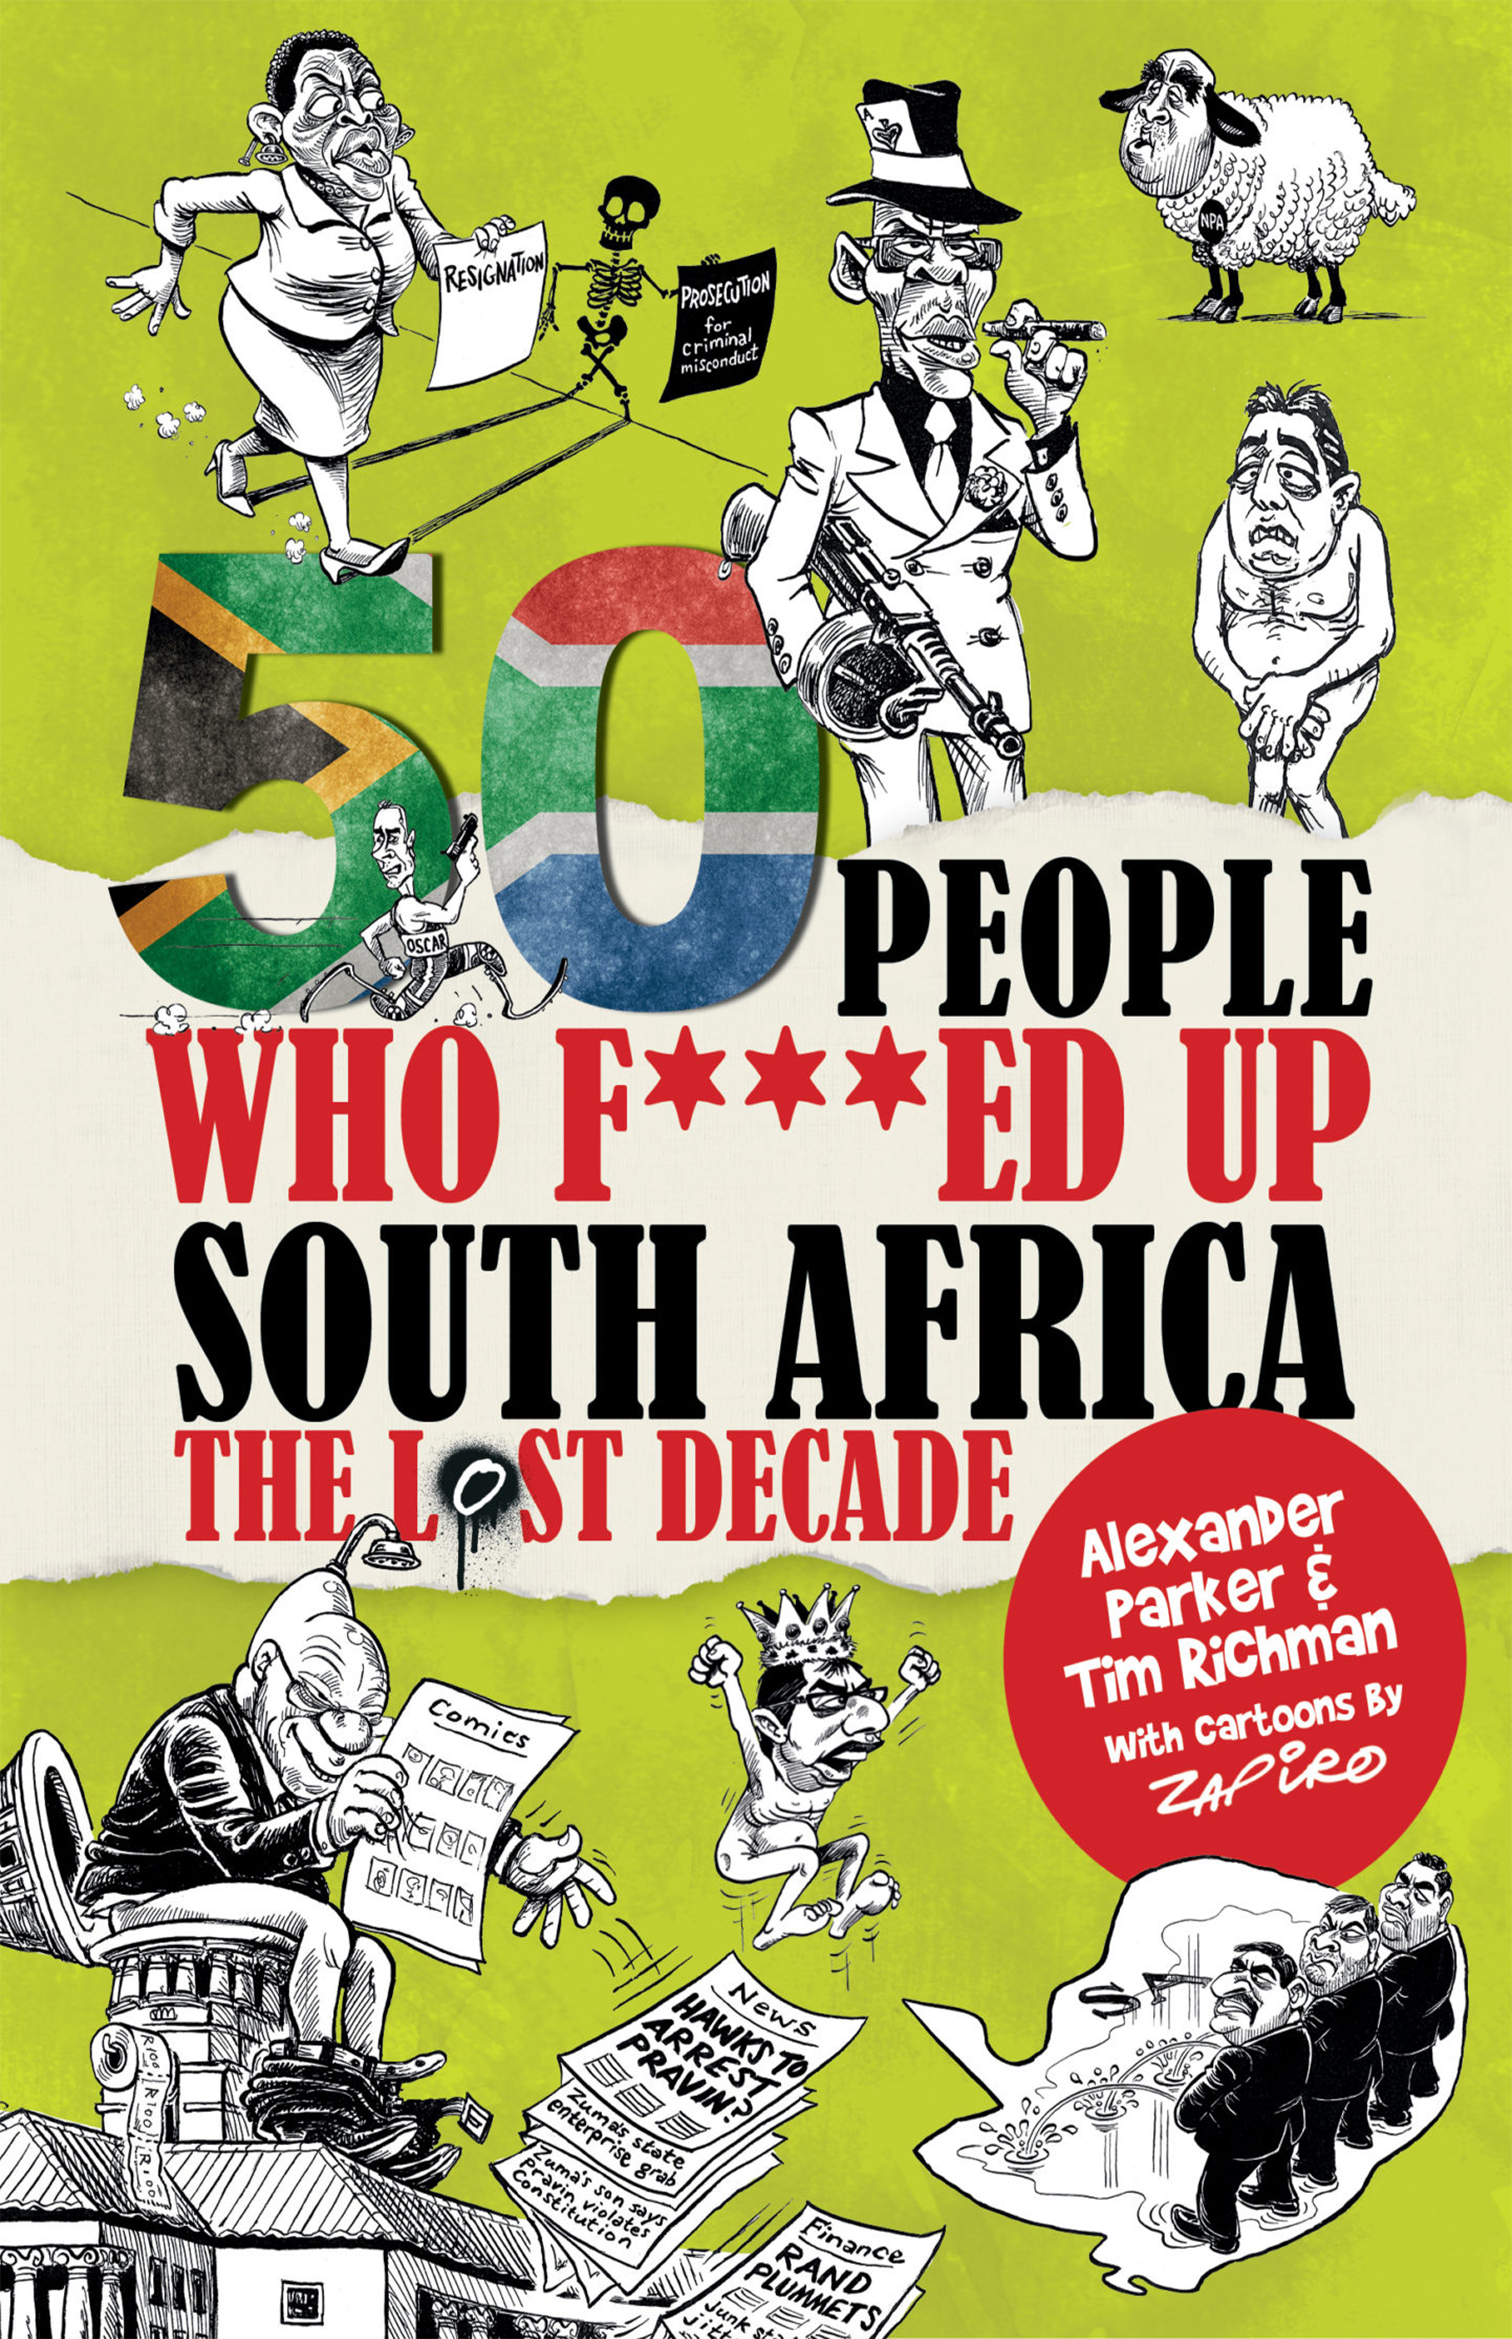 50 People who Fd up SA, the lost decade